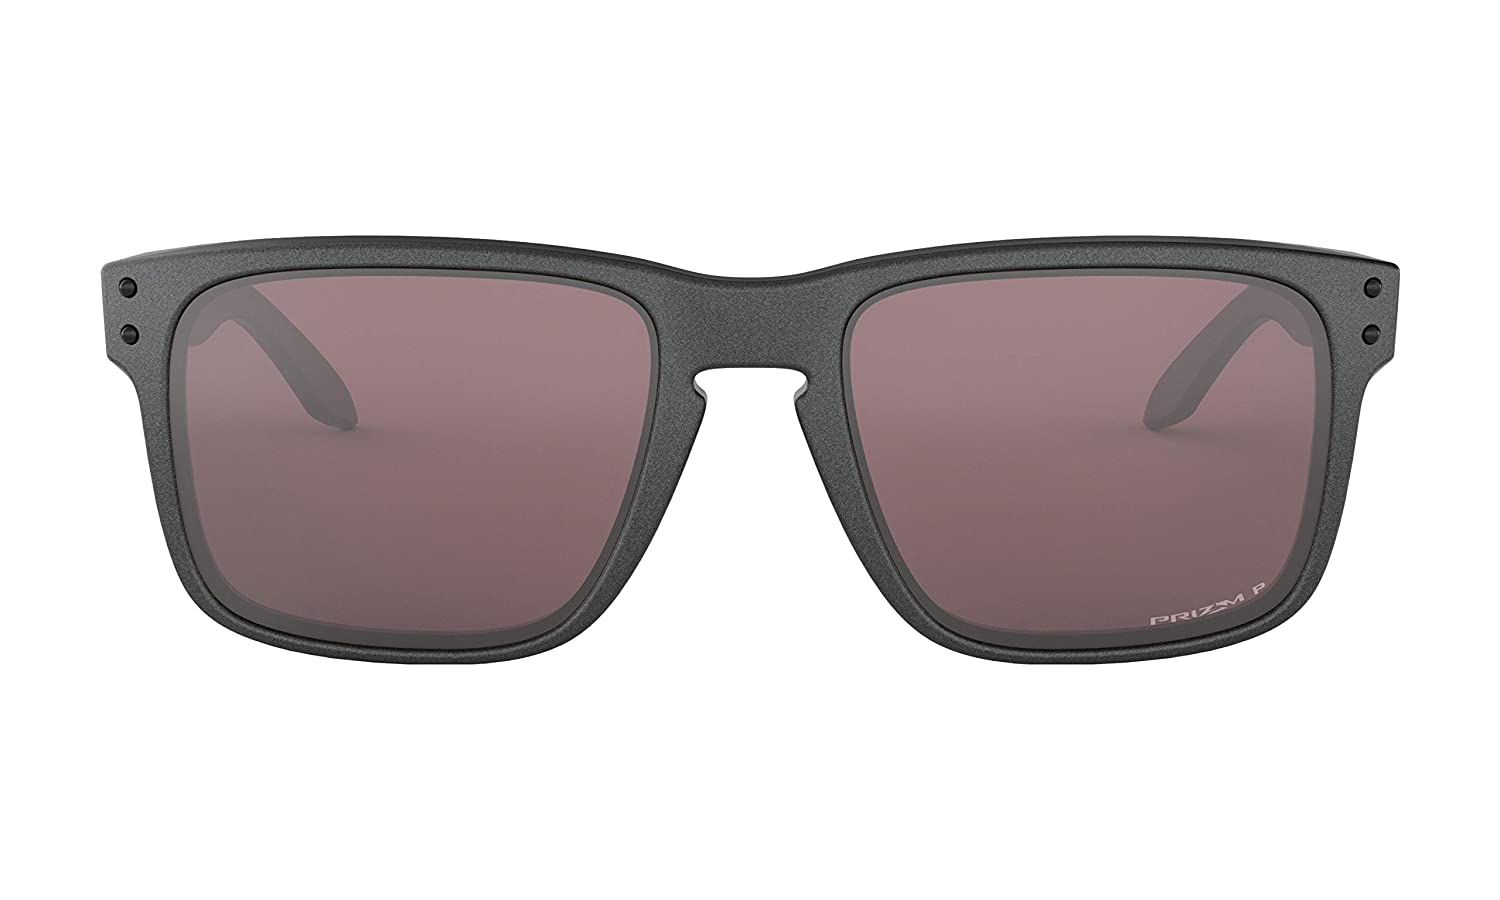 Oakley Mens Holbrook Sunglasses (Steel/Prizm Daily Polarized, One Size) Metal Vault Sunglass Case (Silver)